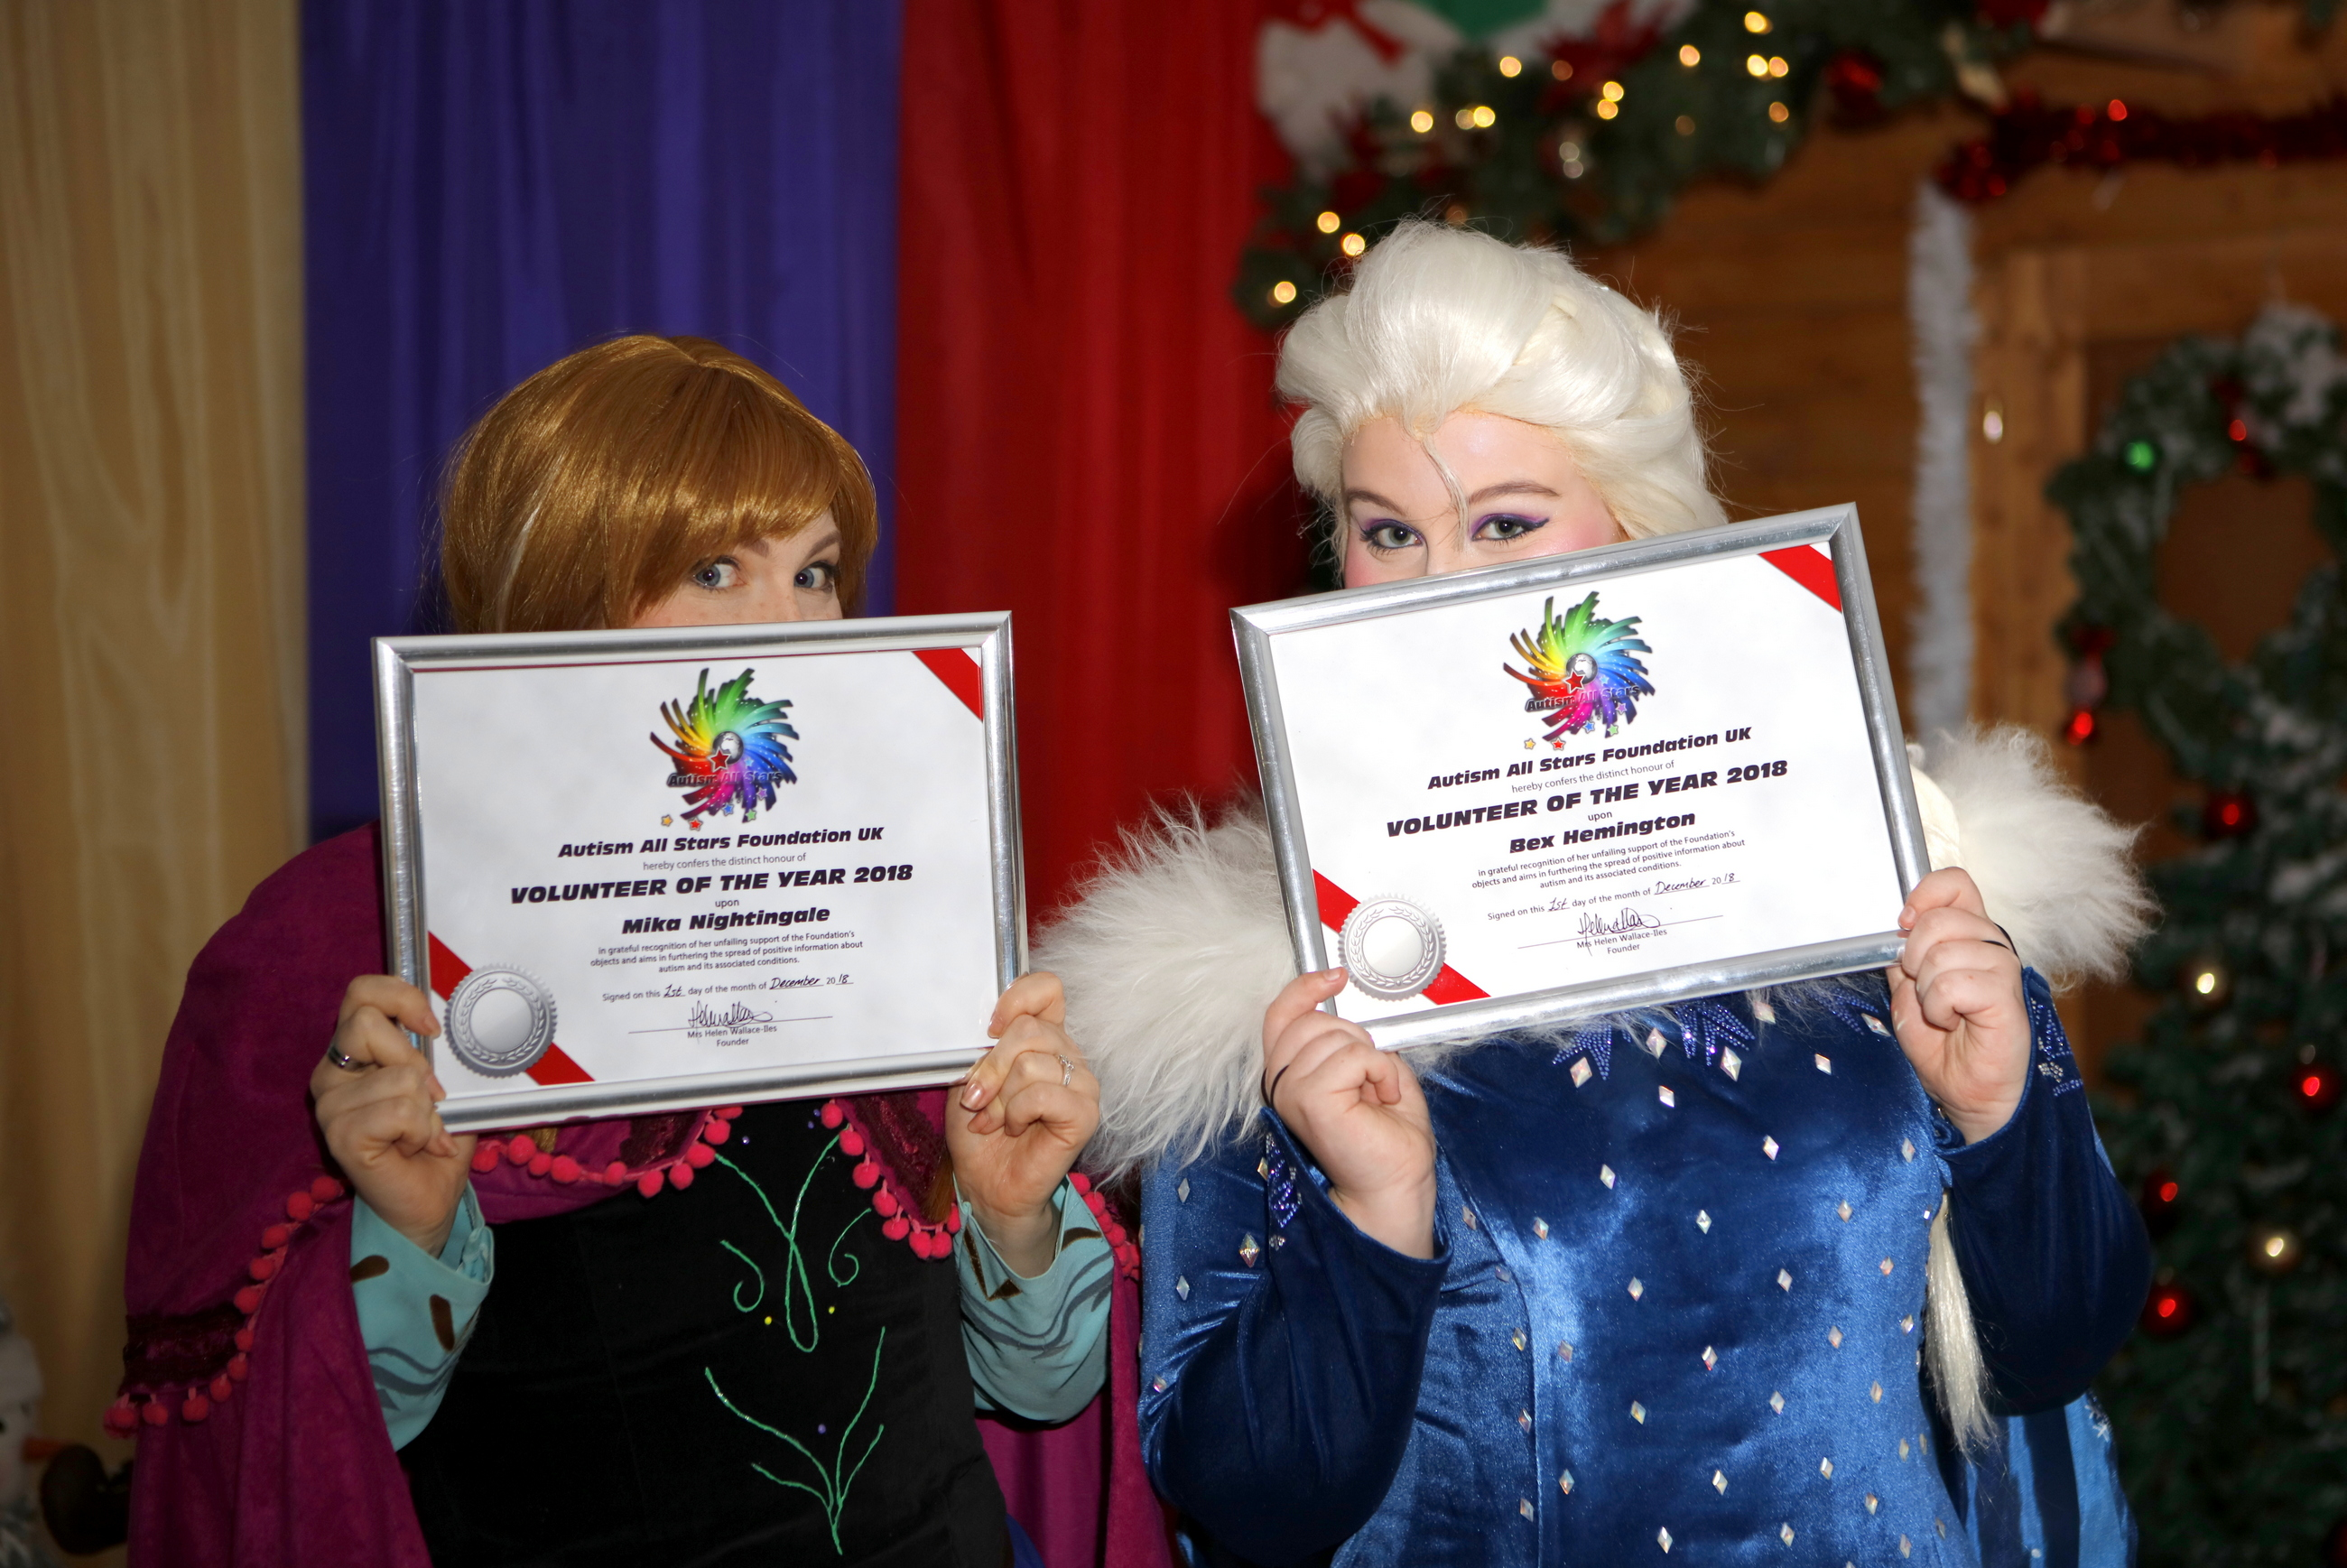 autism, aspergers, autism all stars, volunteer of the year, bex hemington, mika nightingale, surrey, uk